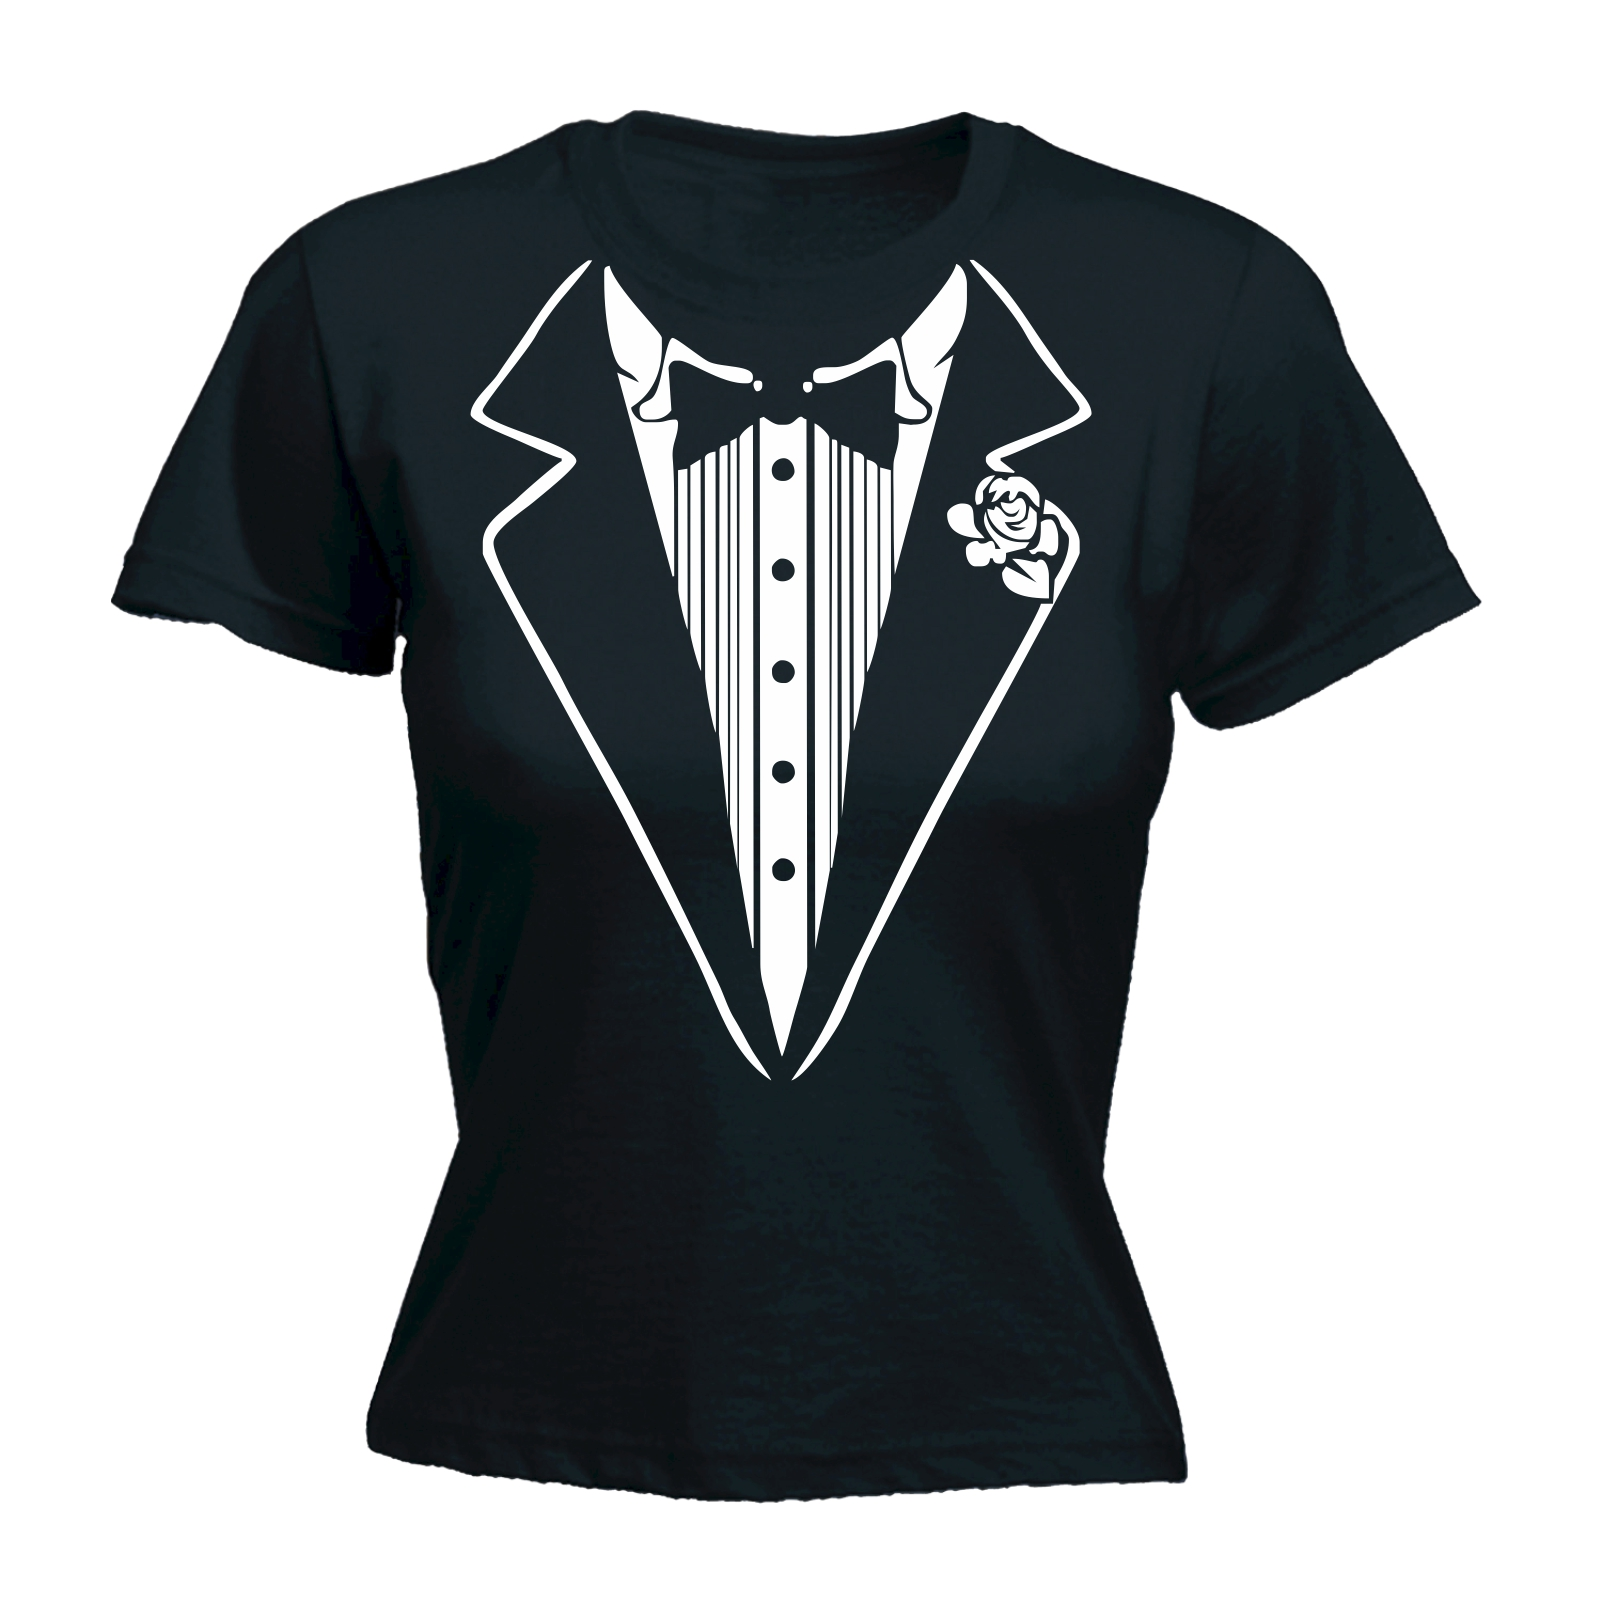 Tuxedo White Womens Fitted T Shirt Fancy Dress Cocktail